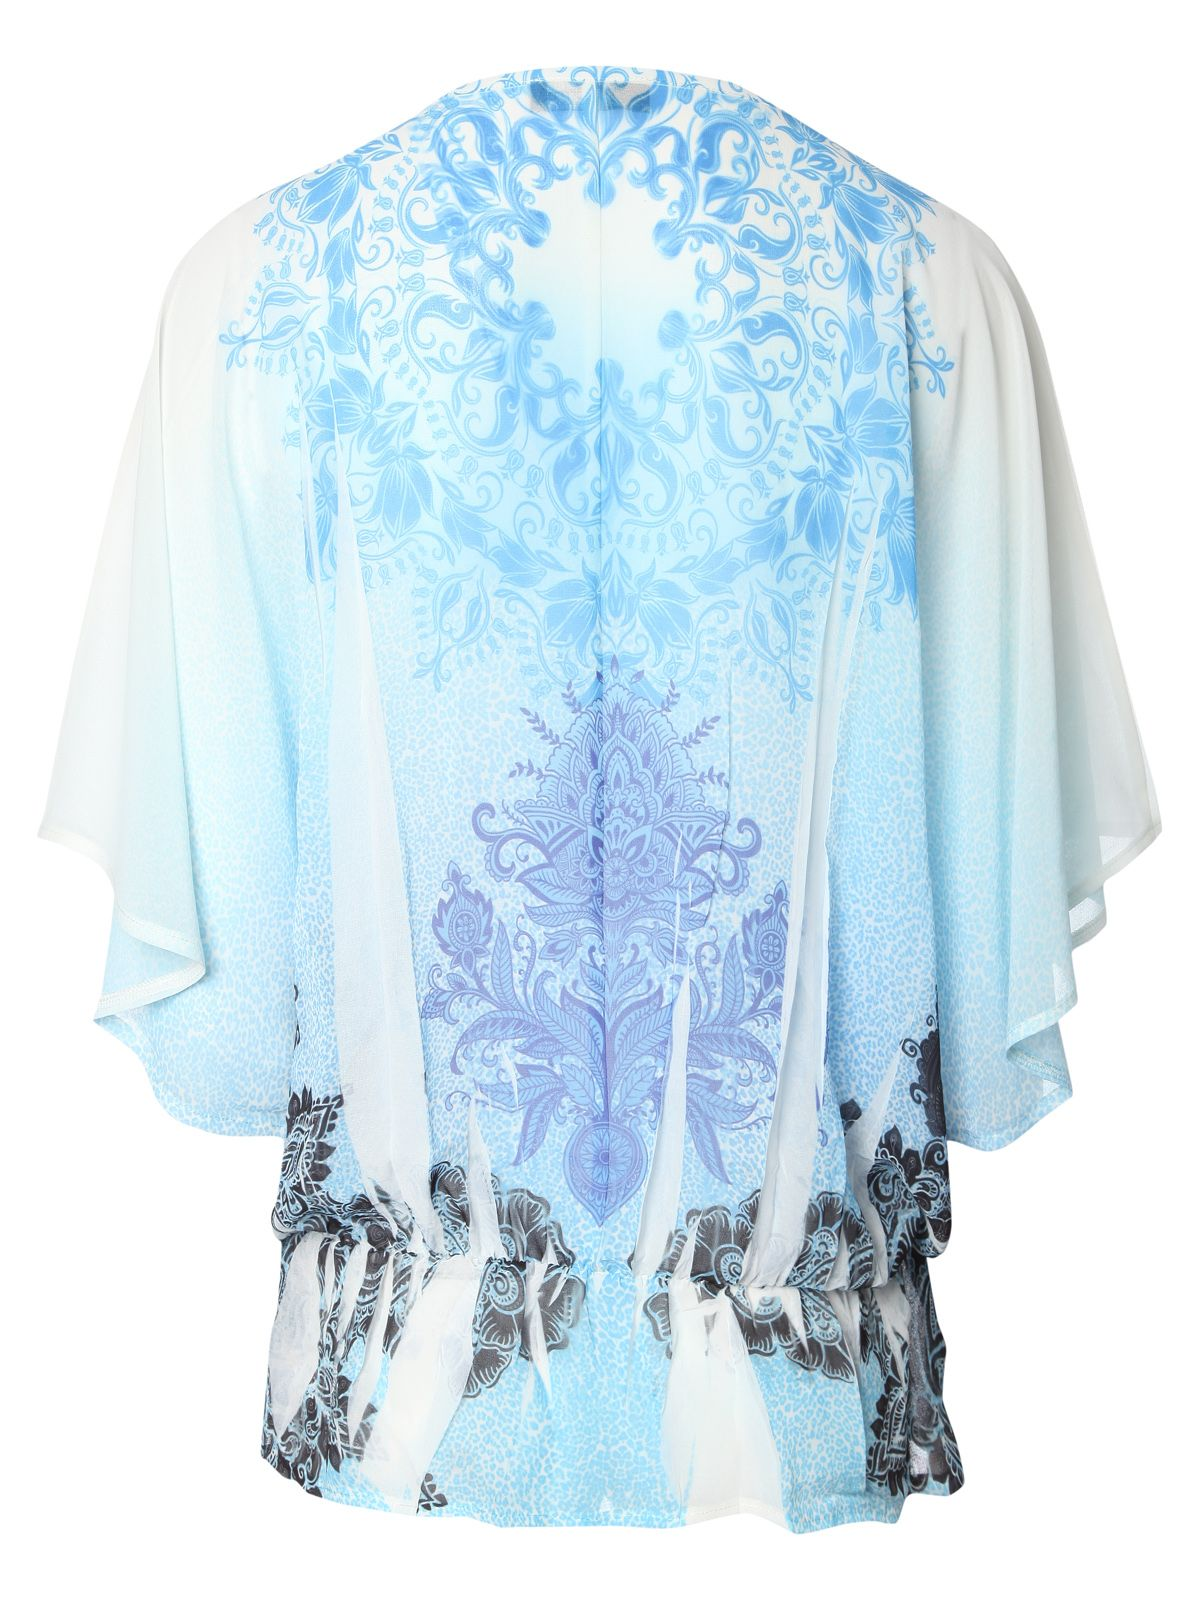 Diamante sub print gypsy top